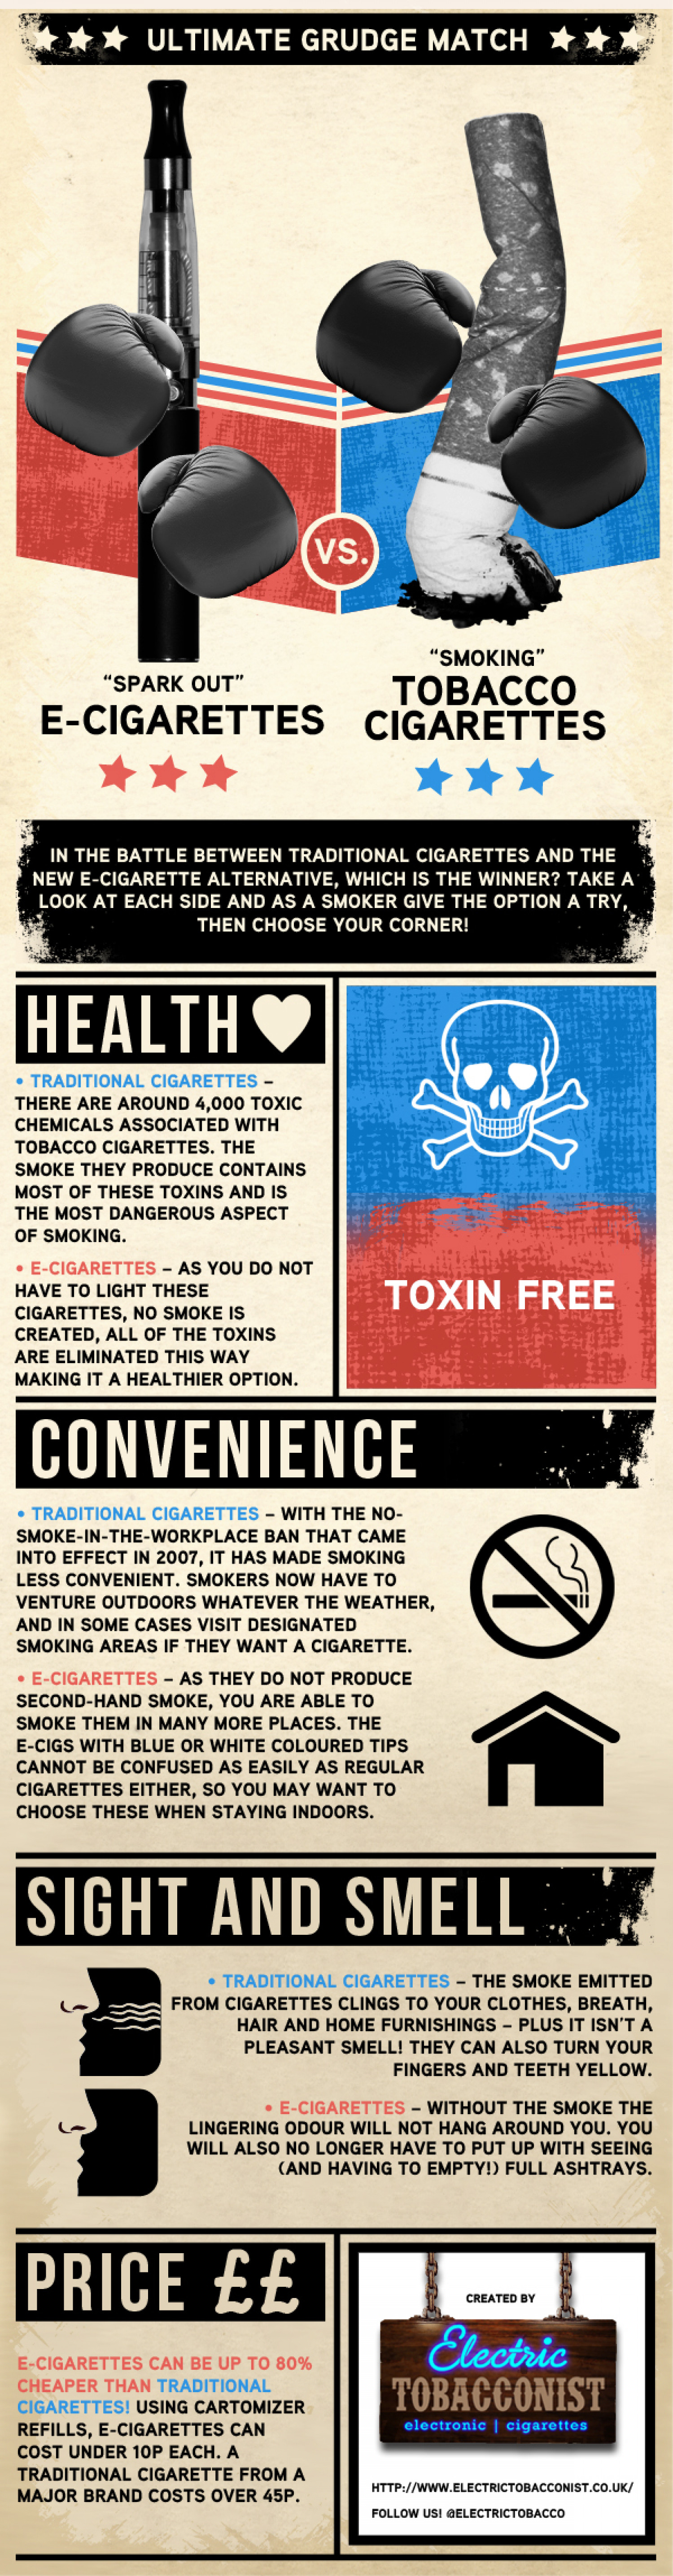 E-Cigarettes Vs. Tobacco Cigarettes Infographic